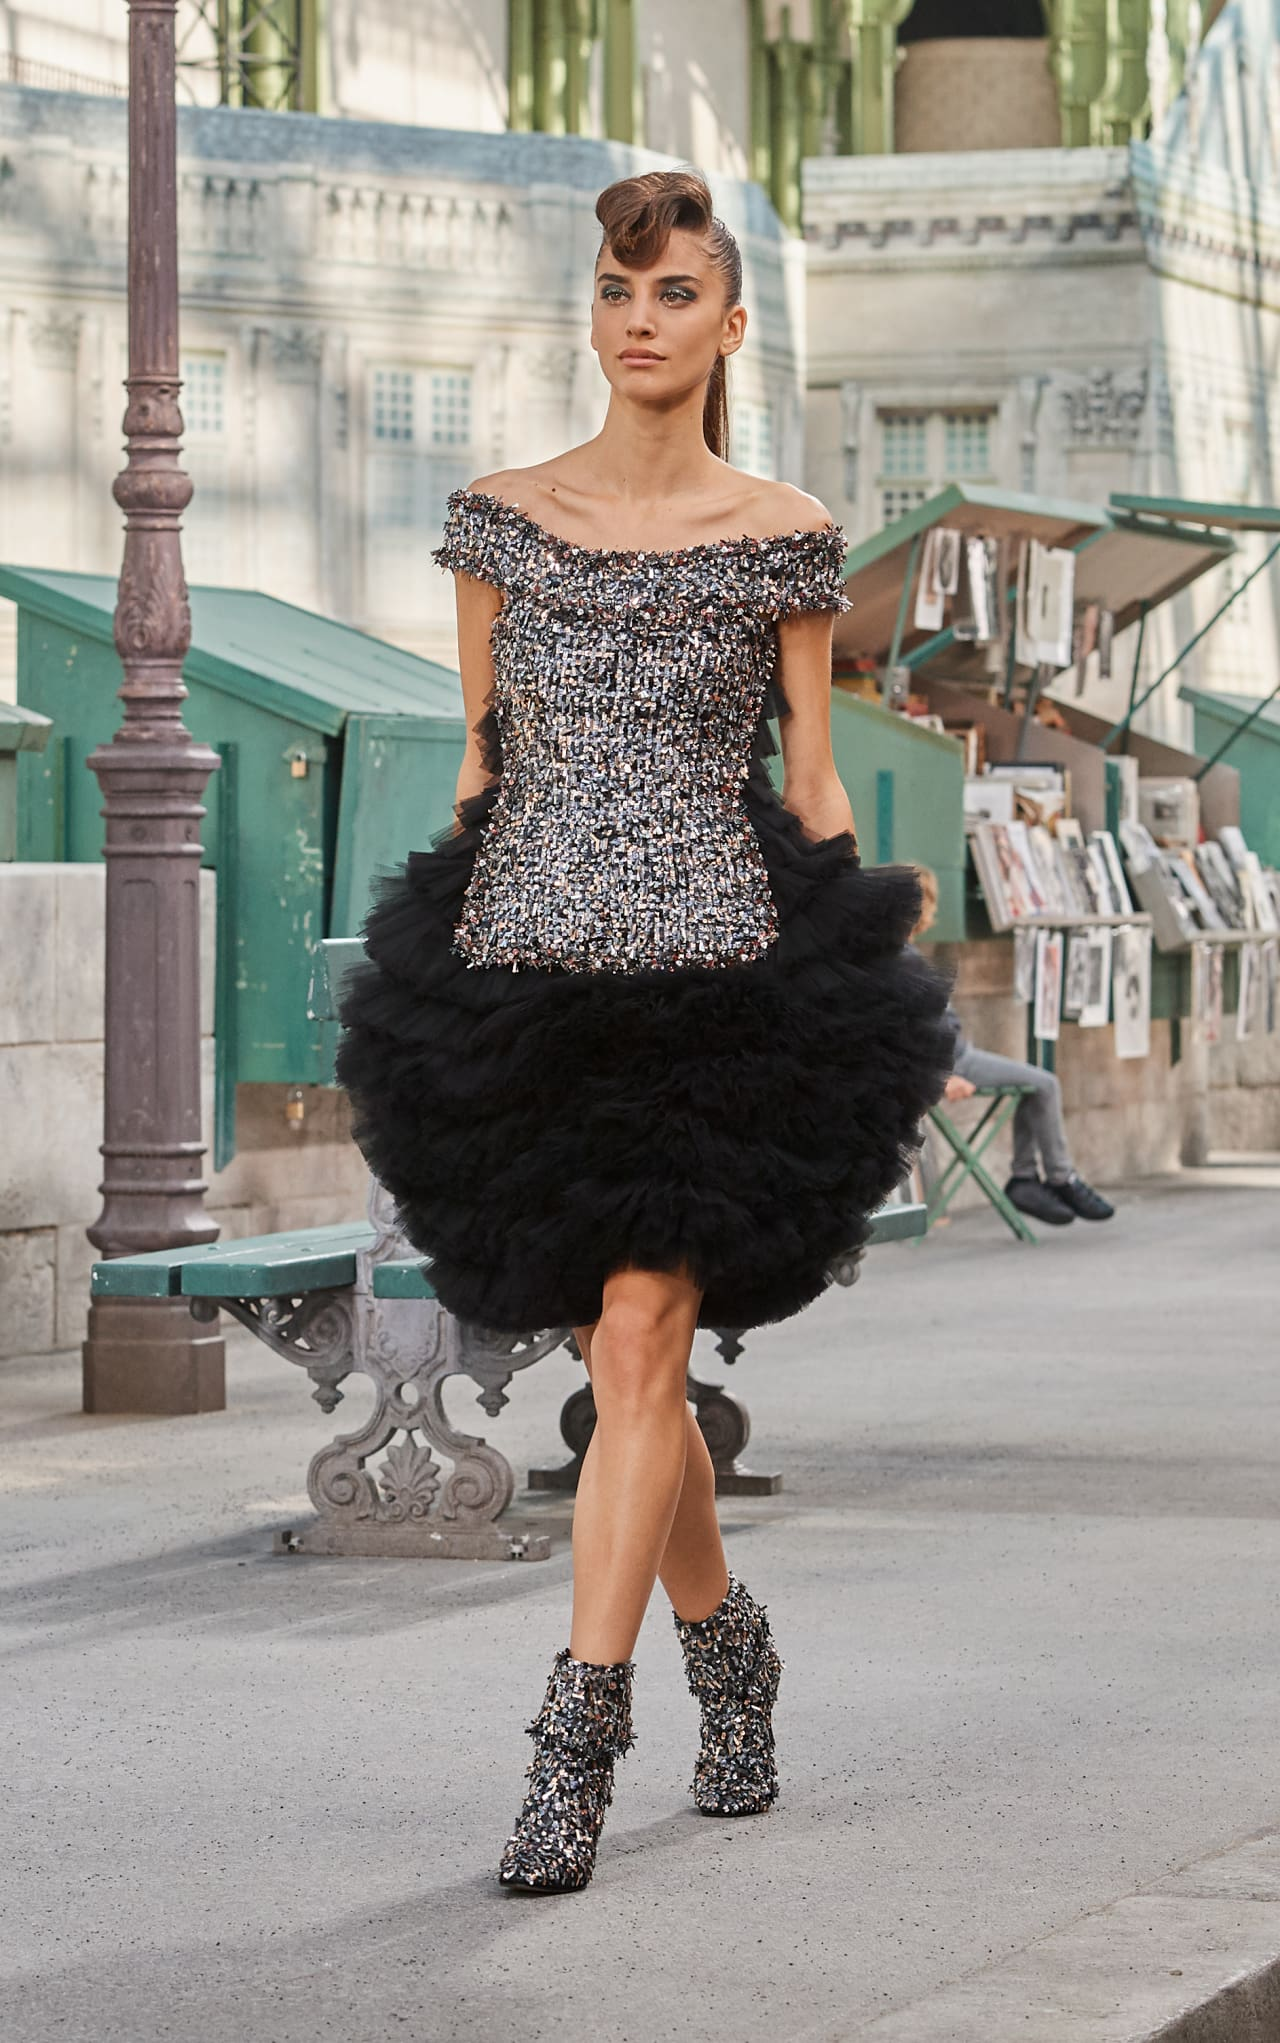 Abito da sera corto Chanel con gonna in tulle natale 2018